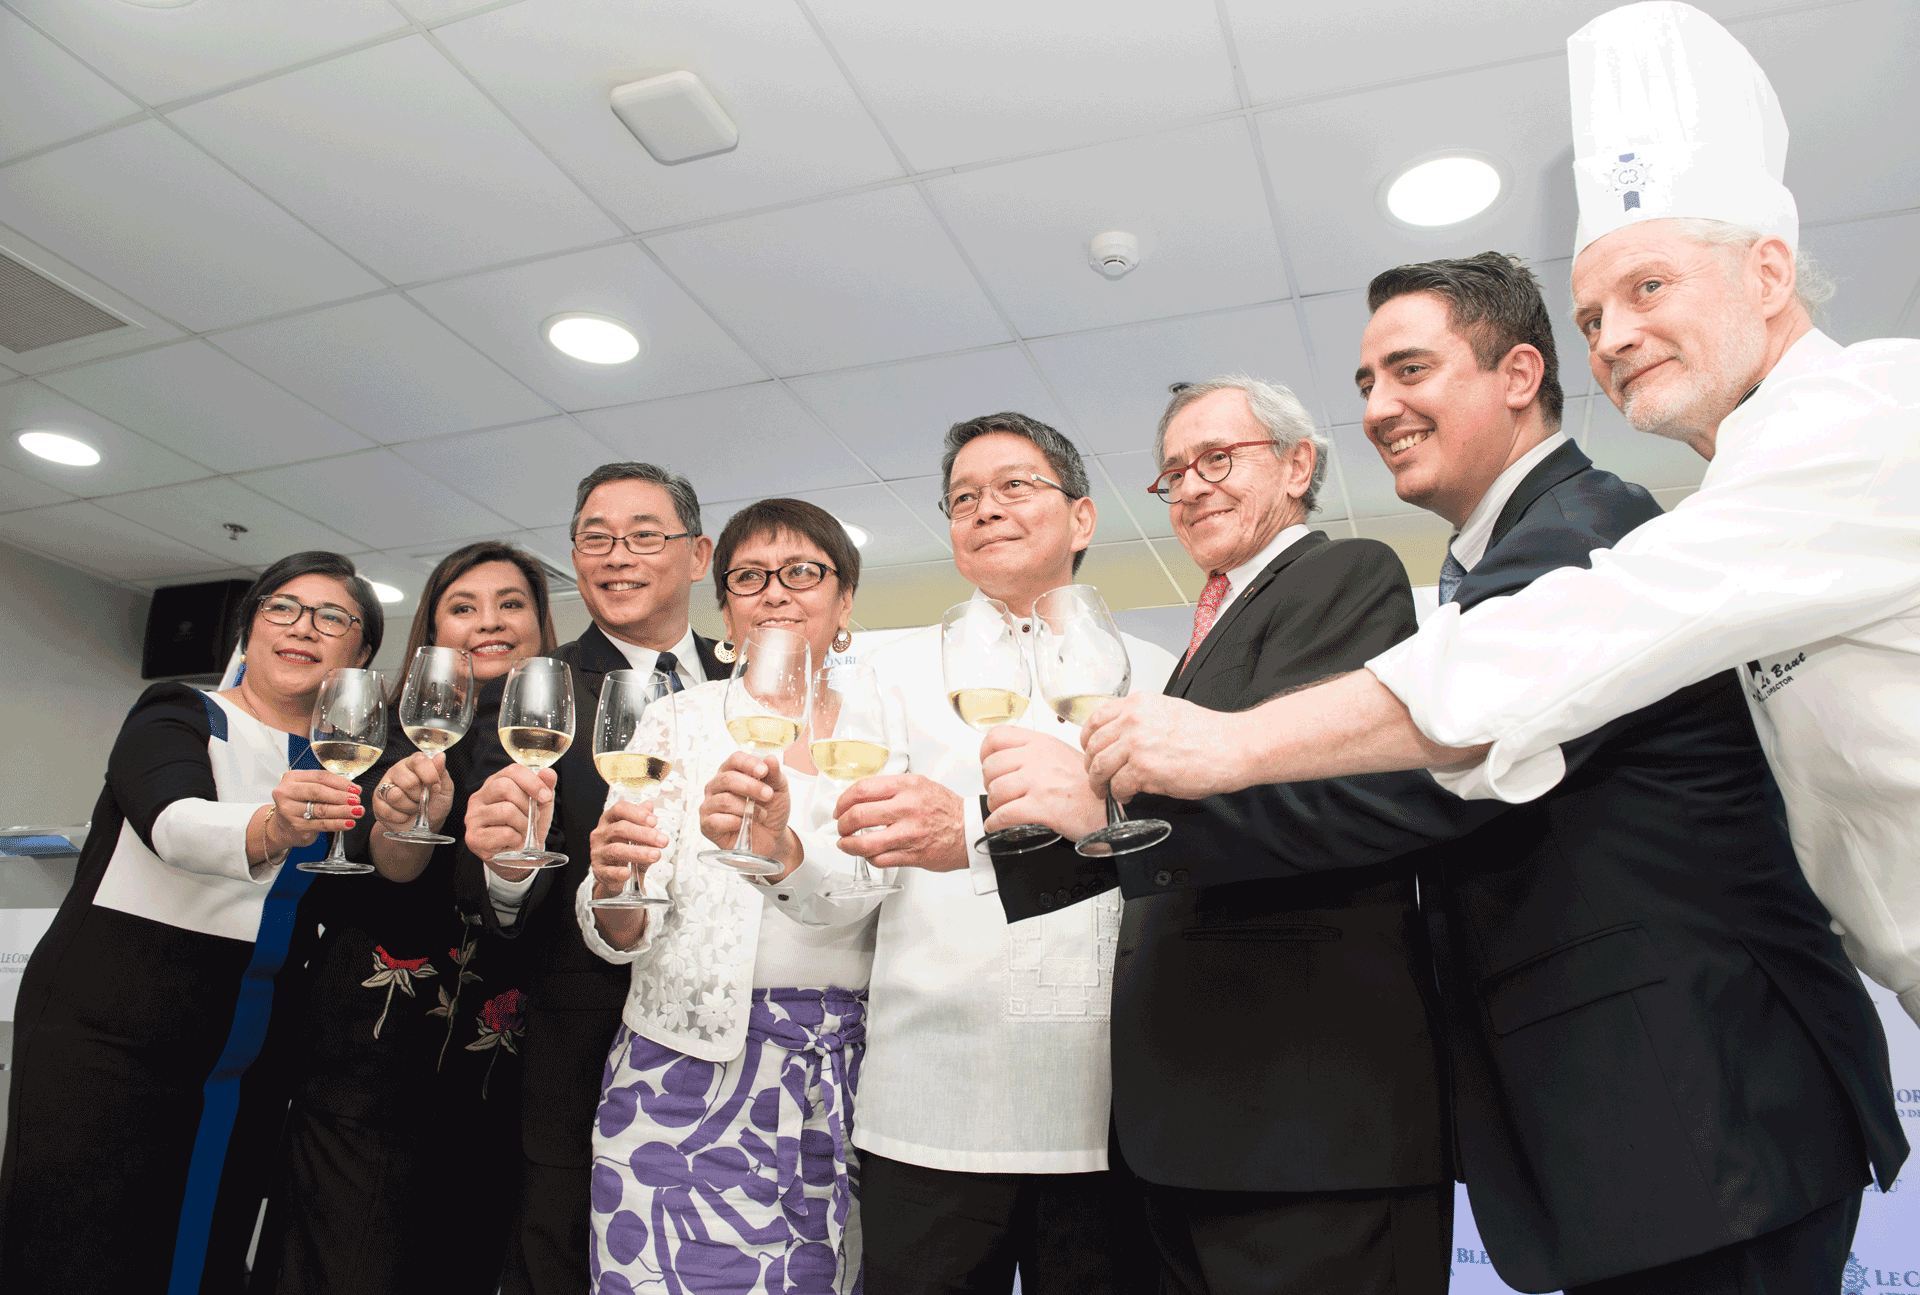 Le Cordon Bleu opens its doors in the Philippines